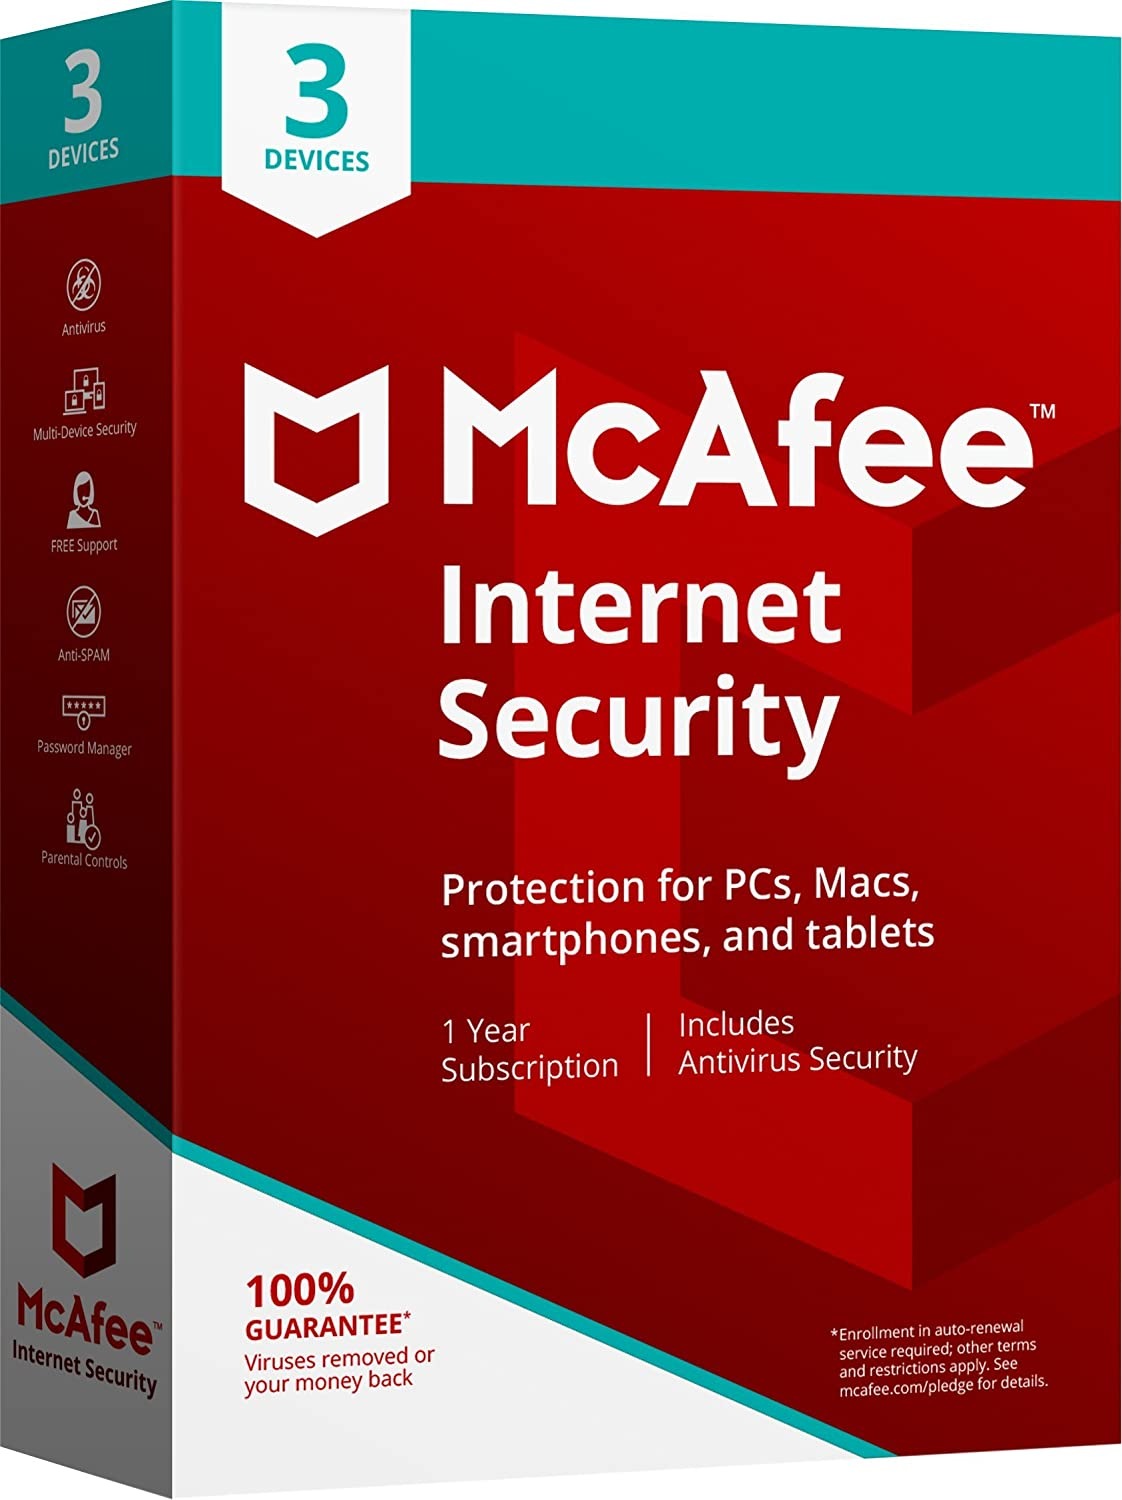 McAfee 2018 Internet Security - 3 Devices